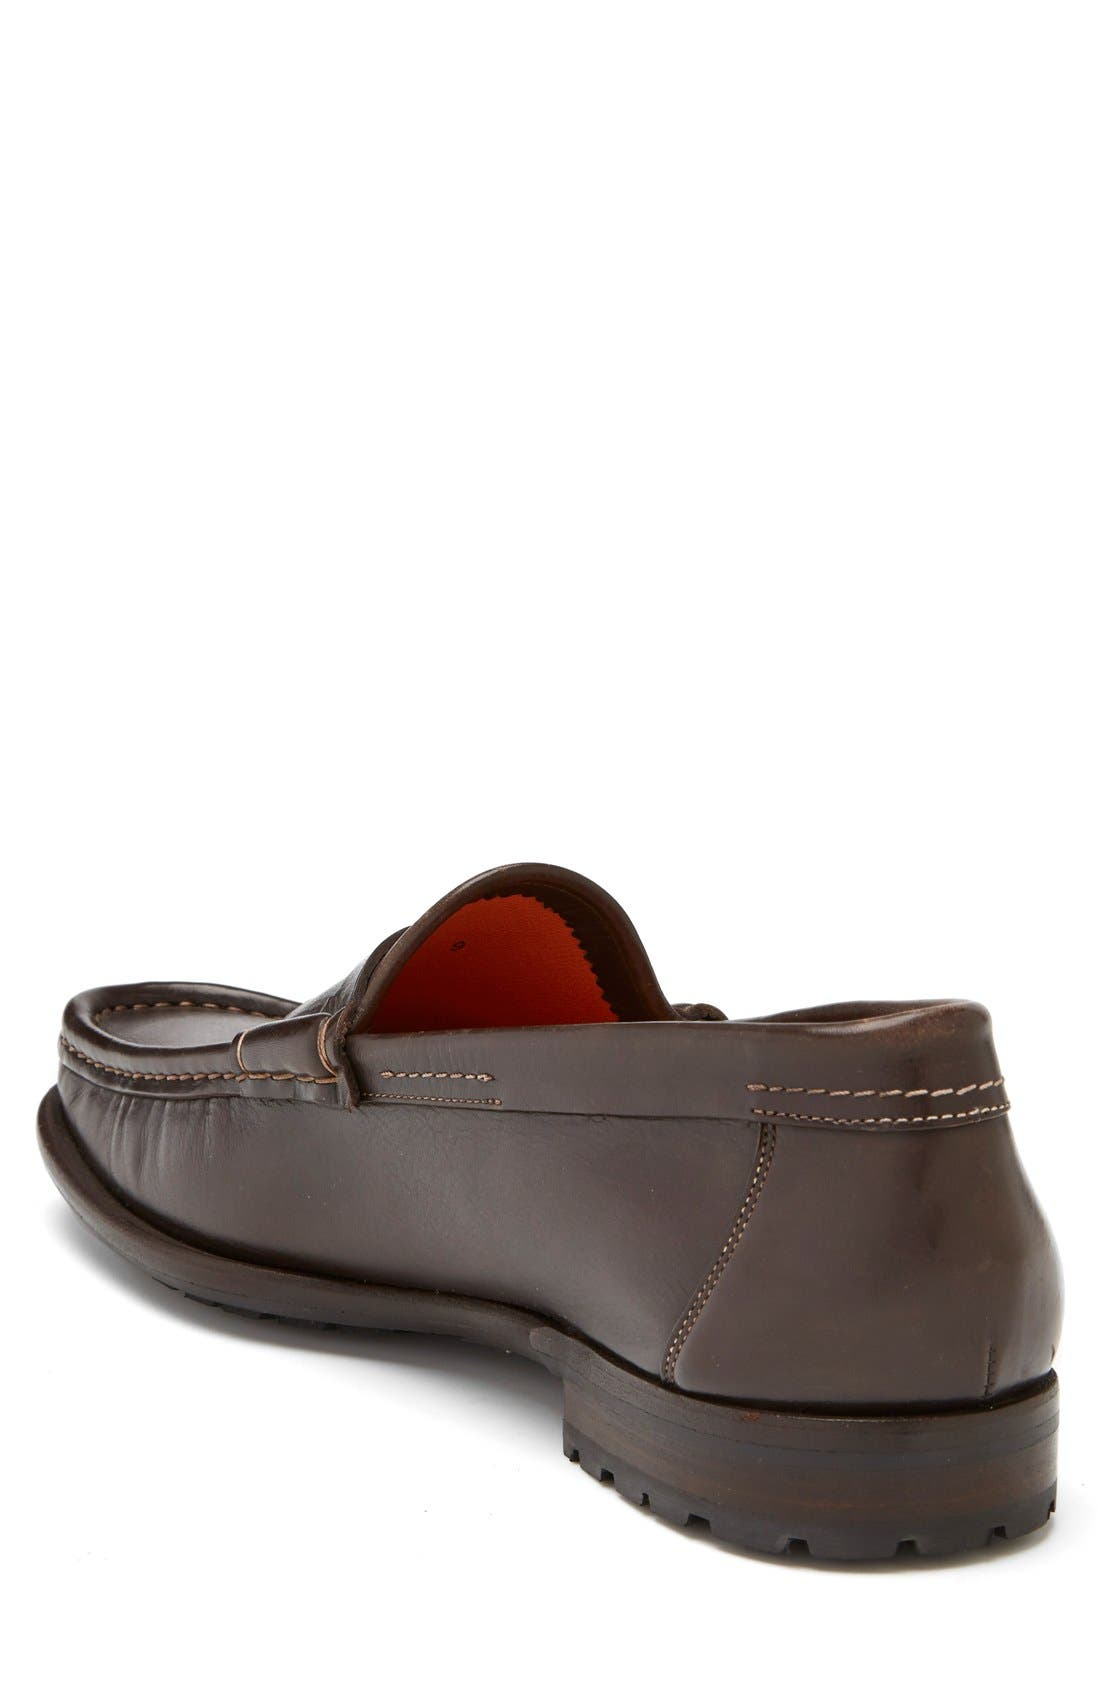 Alternate Image 2  - Santoni 'Quint' Penny Loafer